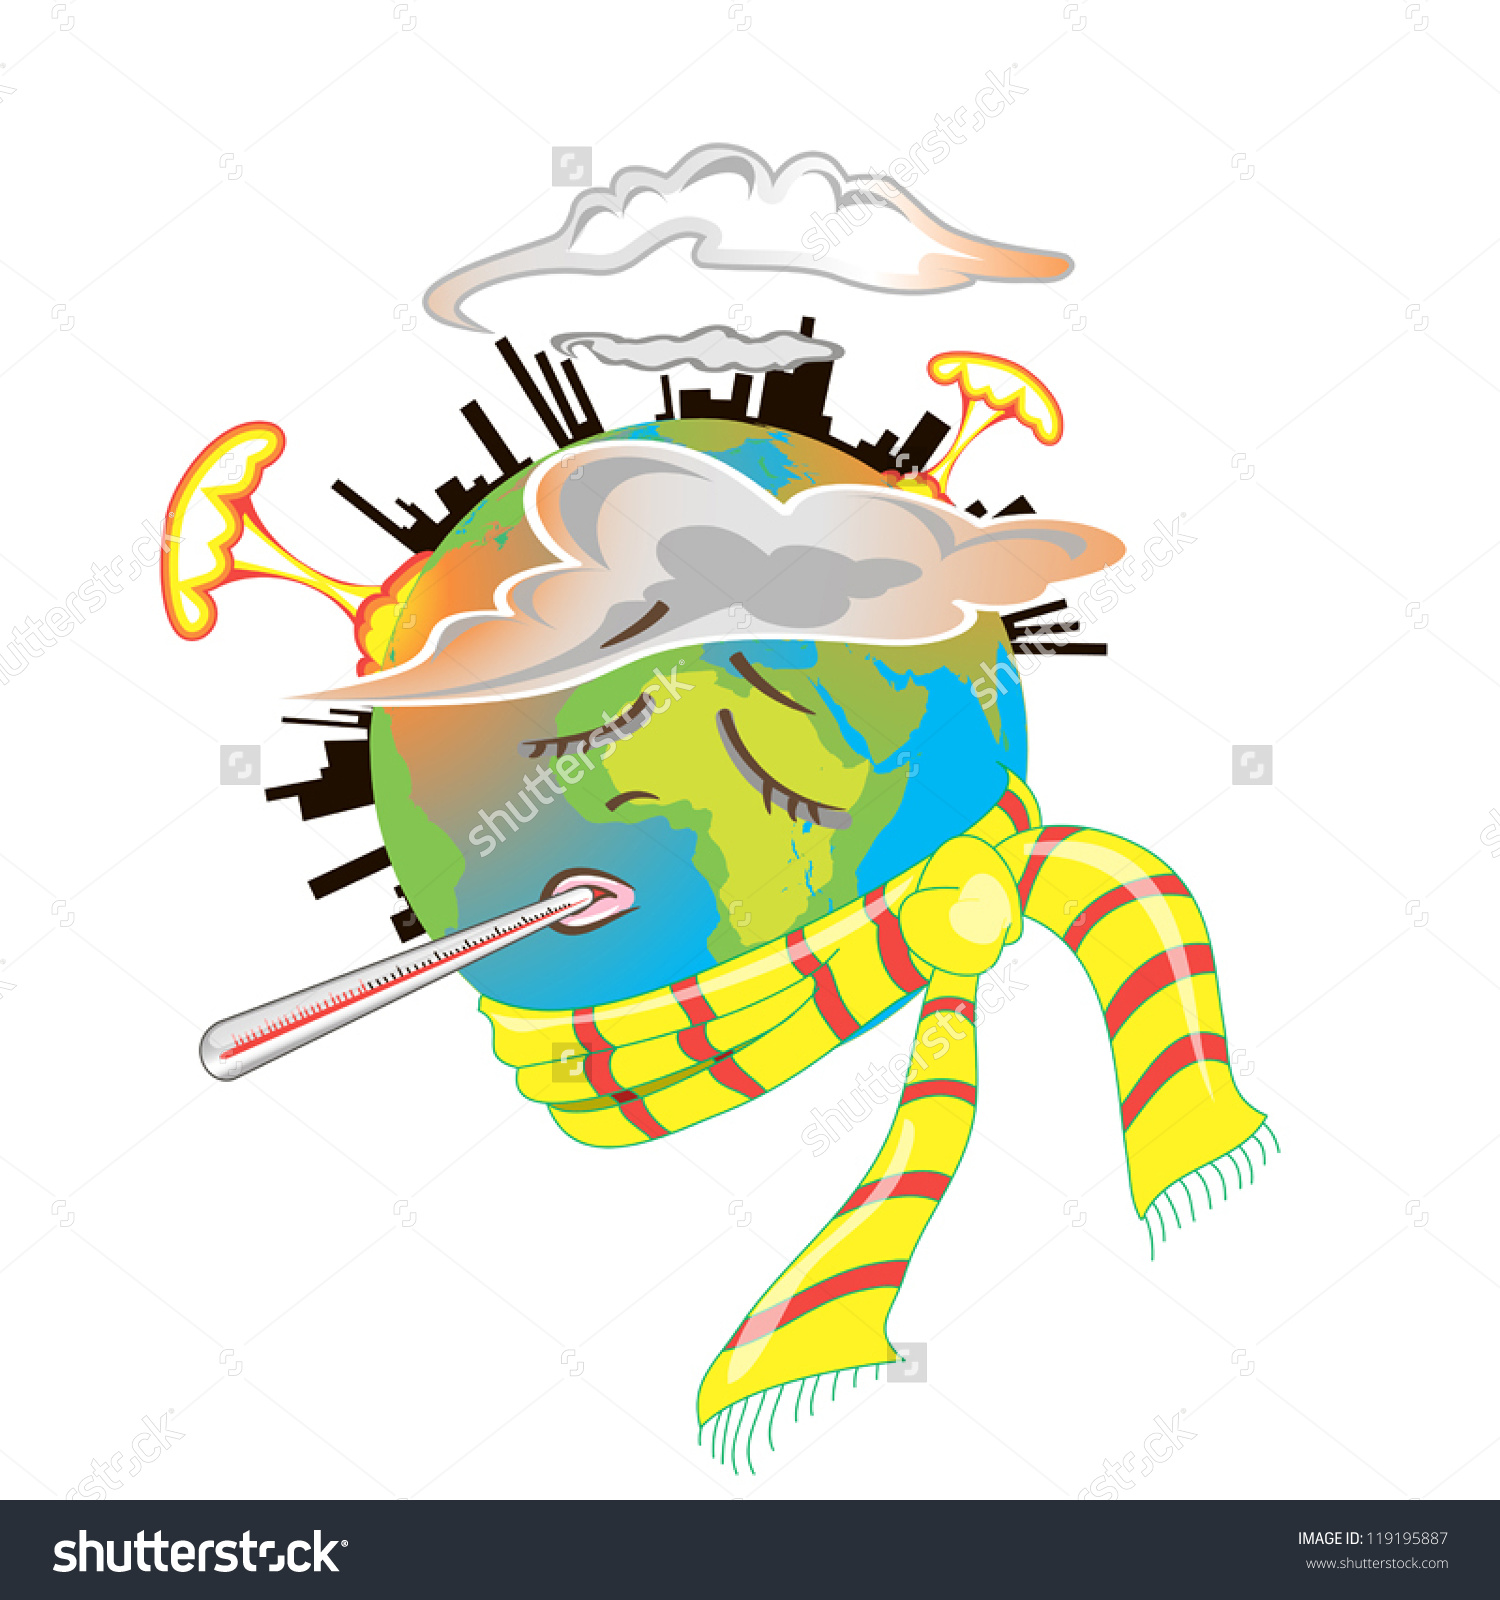 Destroyed environment clipart.